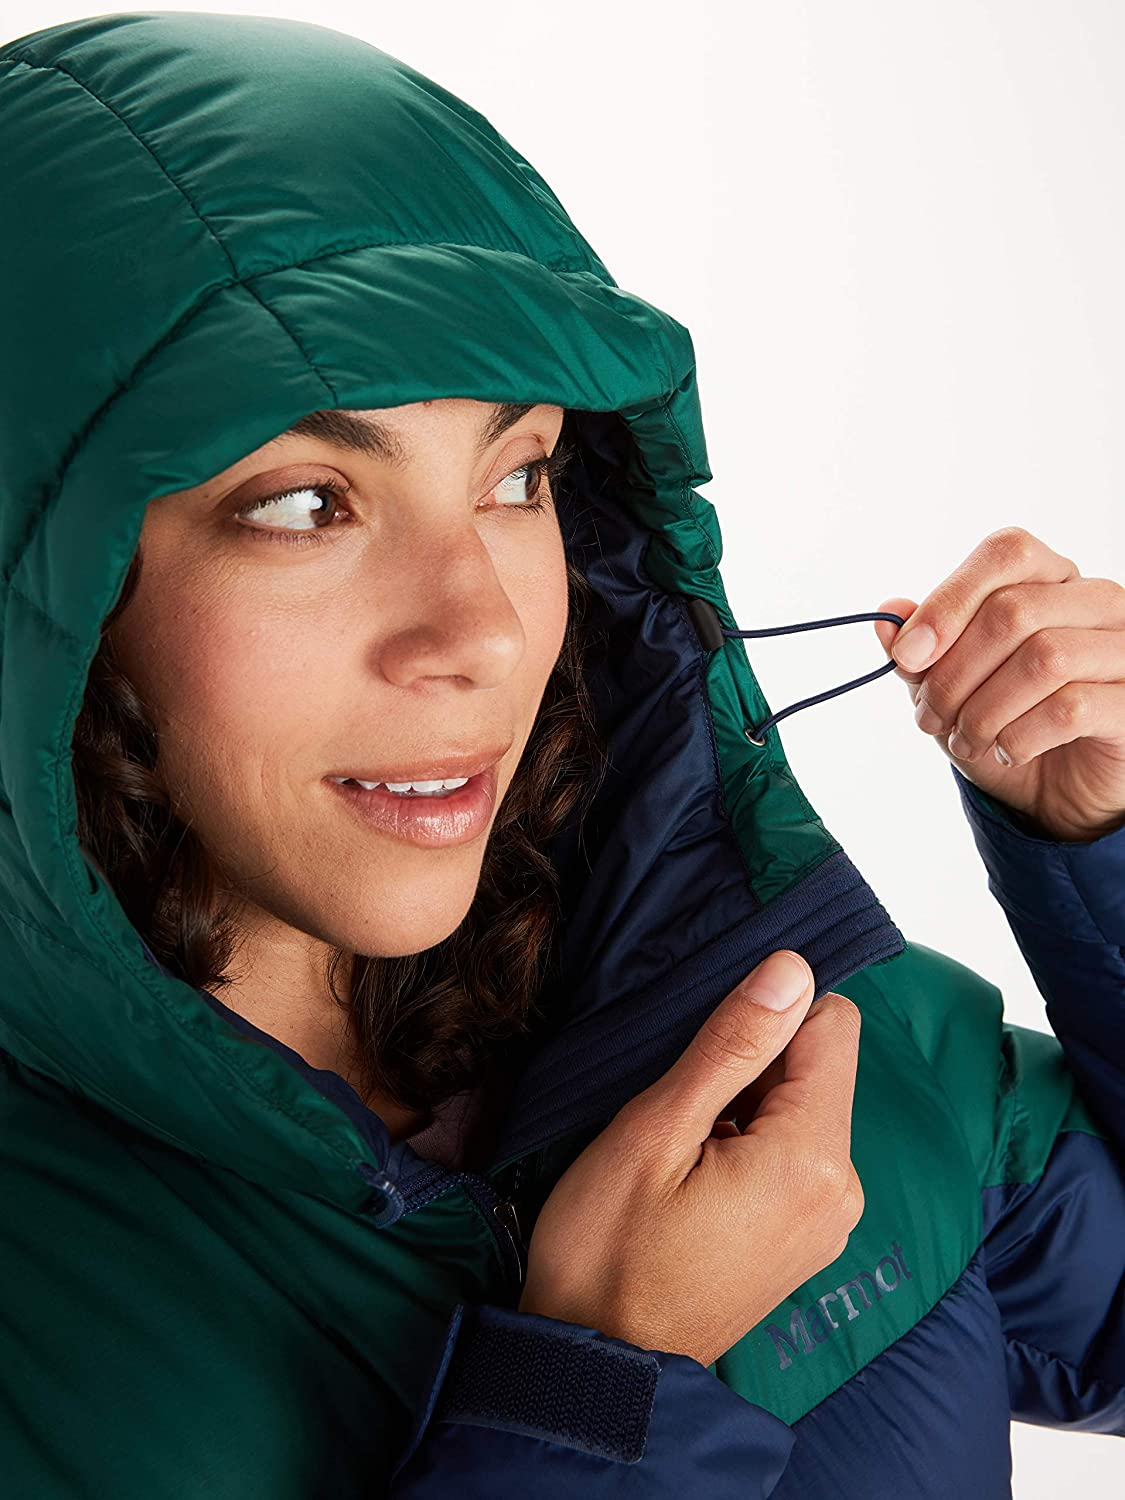 Windproof Water Repellent Anorak Marmot Wms Guides Down Hoody Lightweight Insulated Down Jacket Outdoor Jacket 700 Fill Power